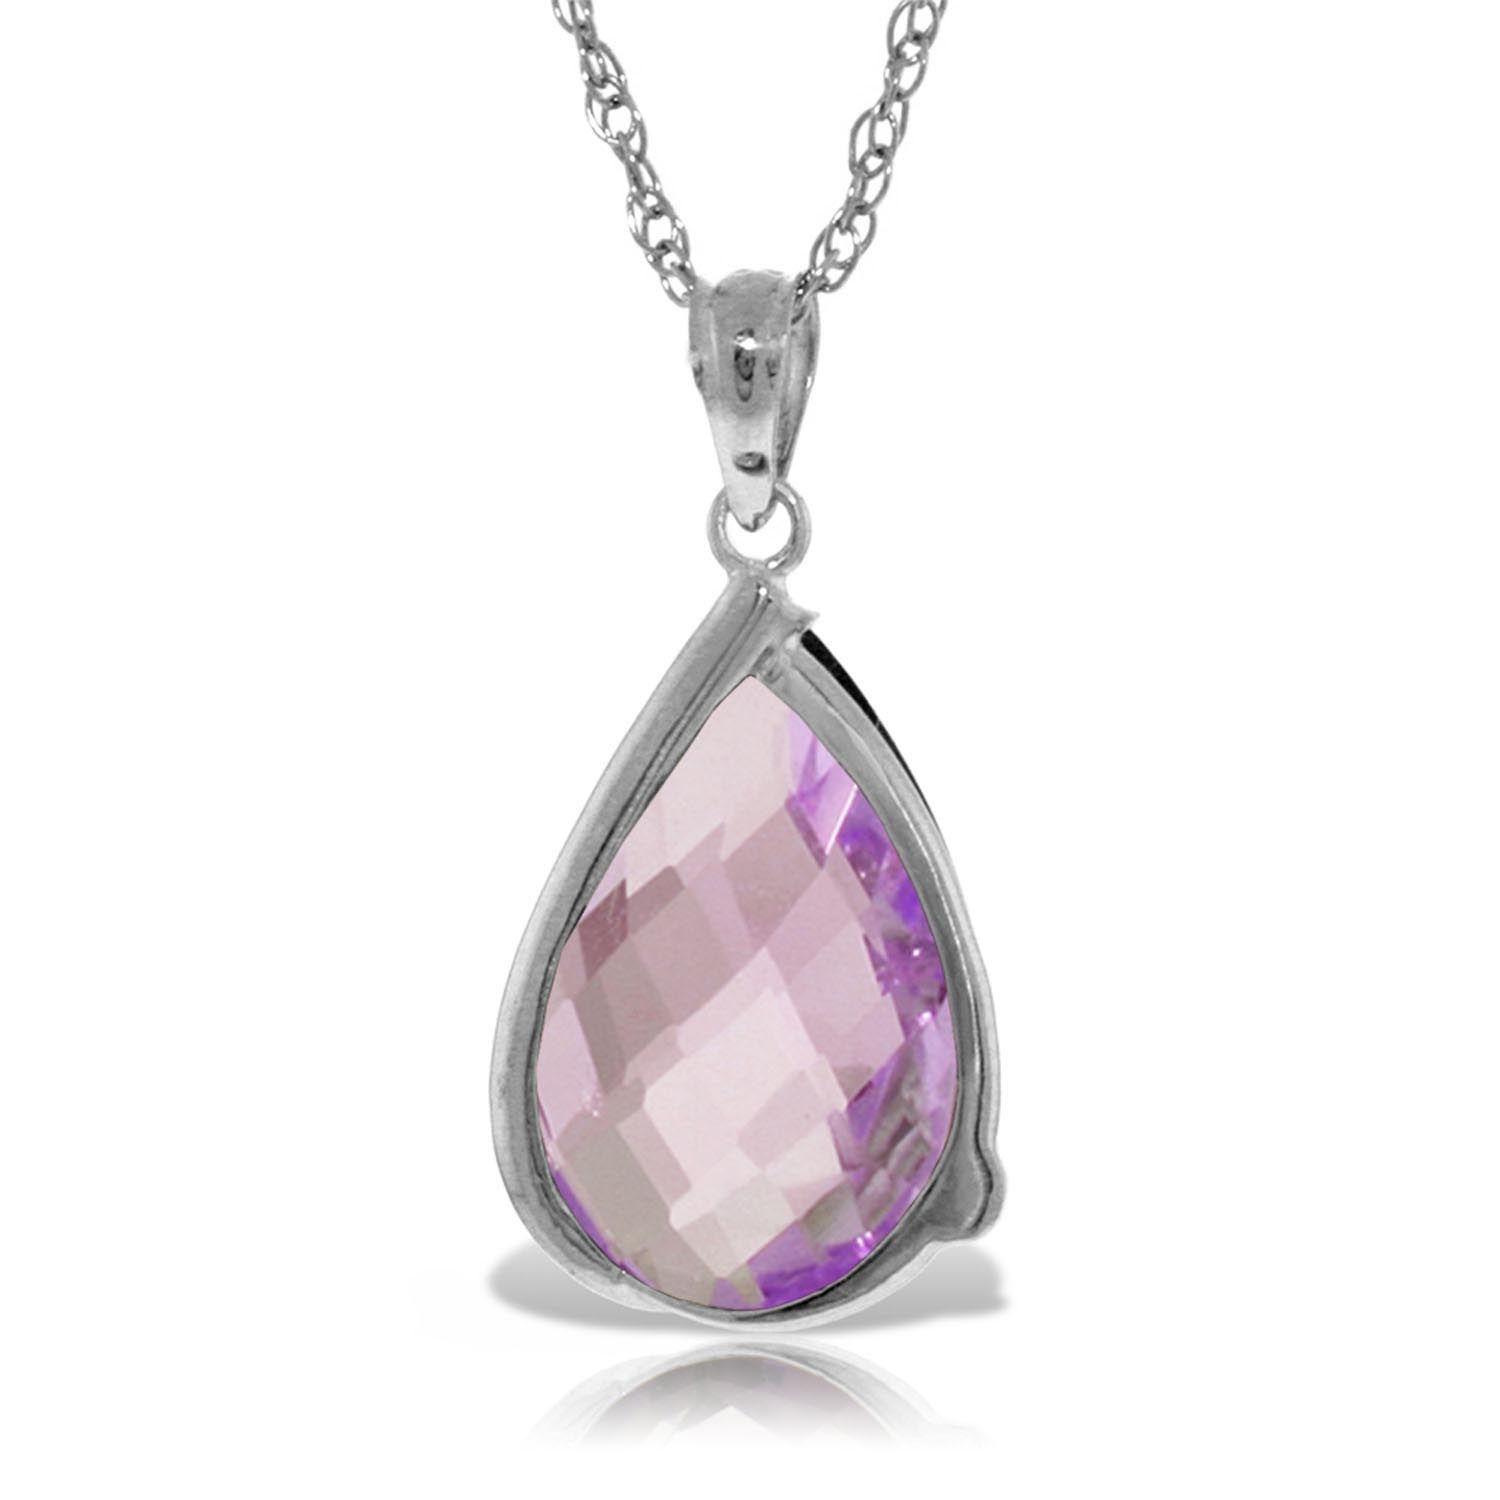 Amethyst & Diamond Chequer Pendant Necklace in 9ct White Gold